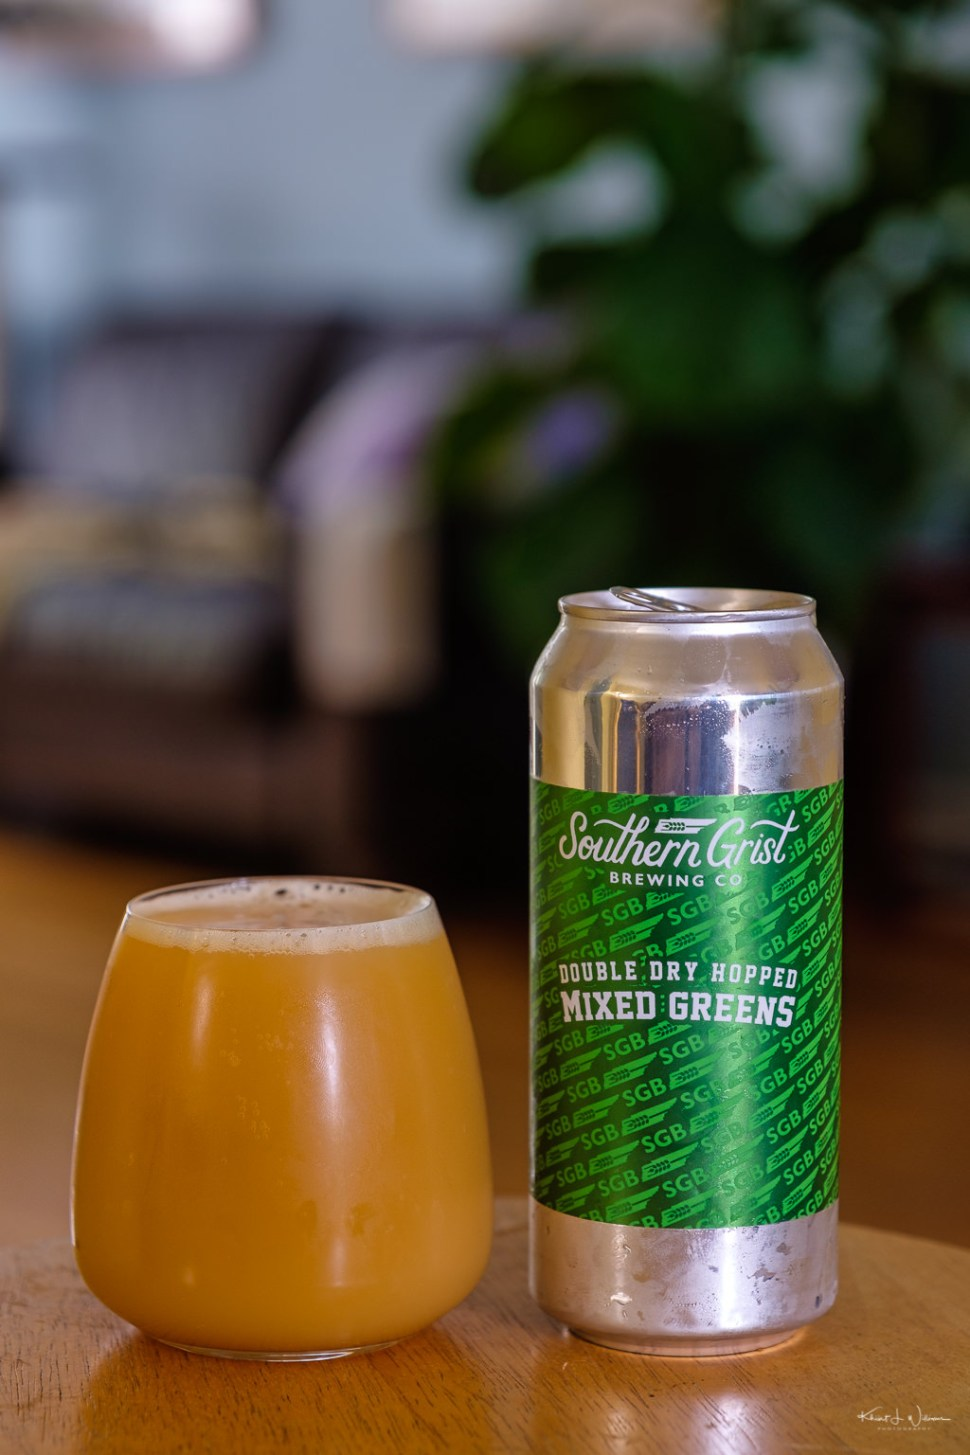 DDH Mixed Greens XXVIII by Southern Grist Brewing Company craft ale